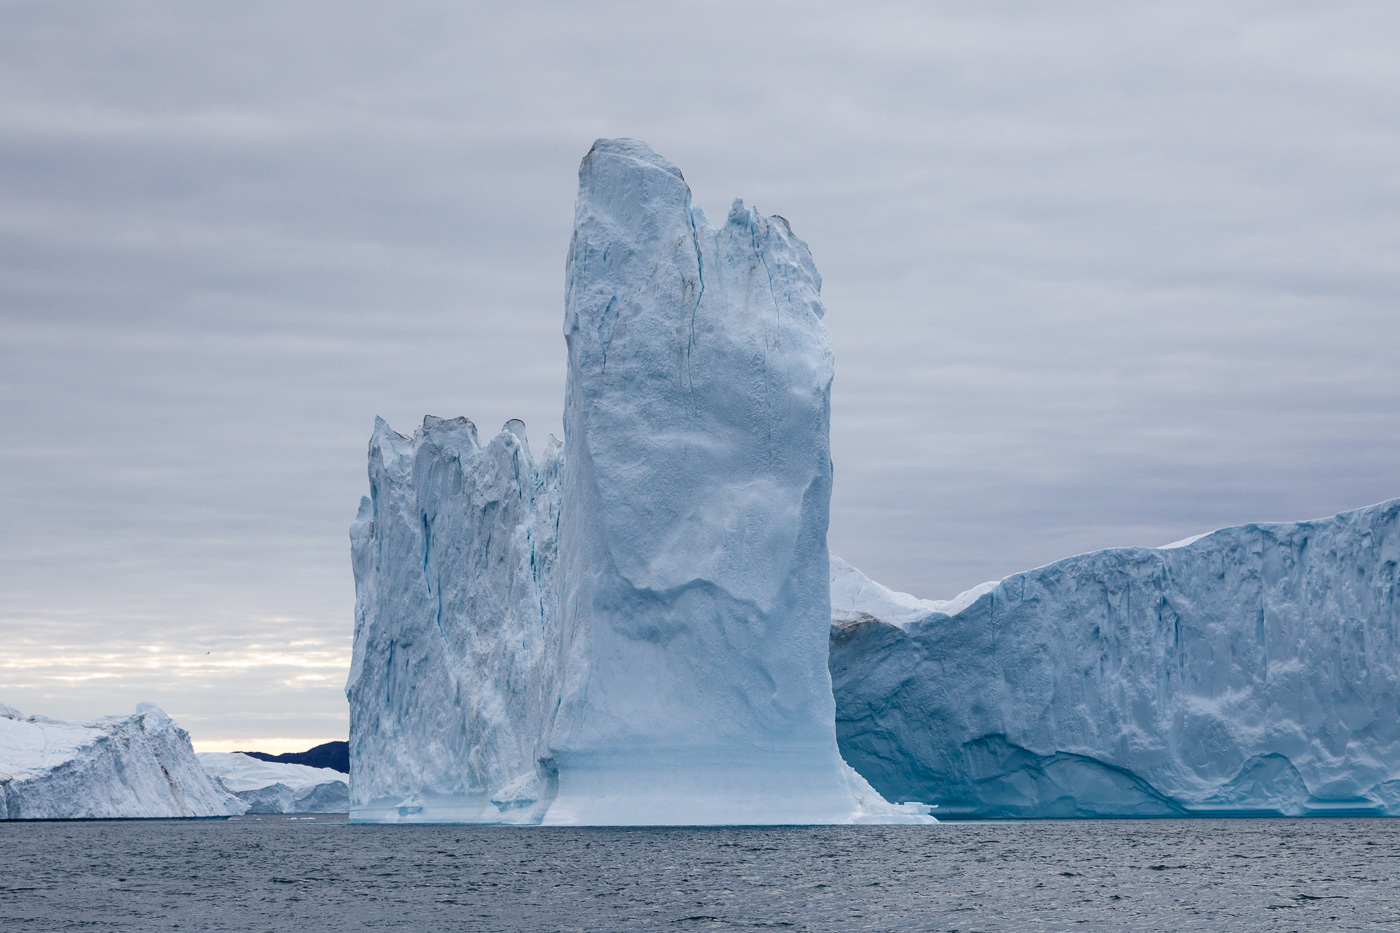 A Tower of Ice